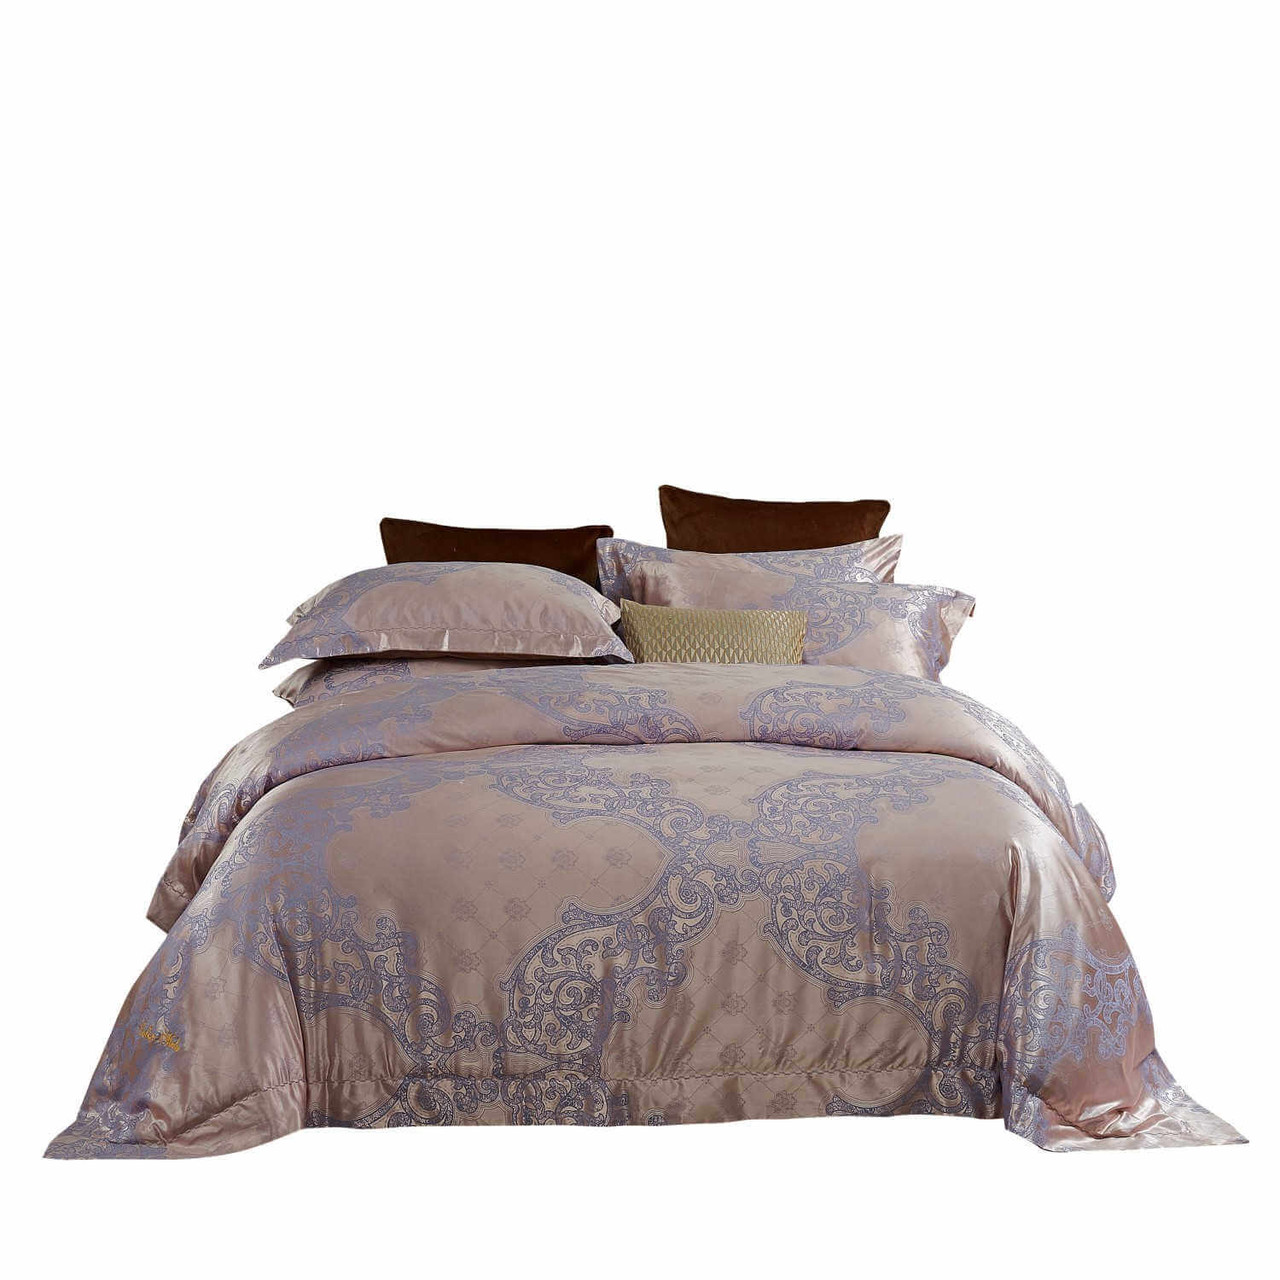 DM805Q Dolce-Mela Luxury Jacquard Bedding Set Wholesale-Dropship